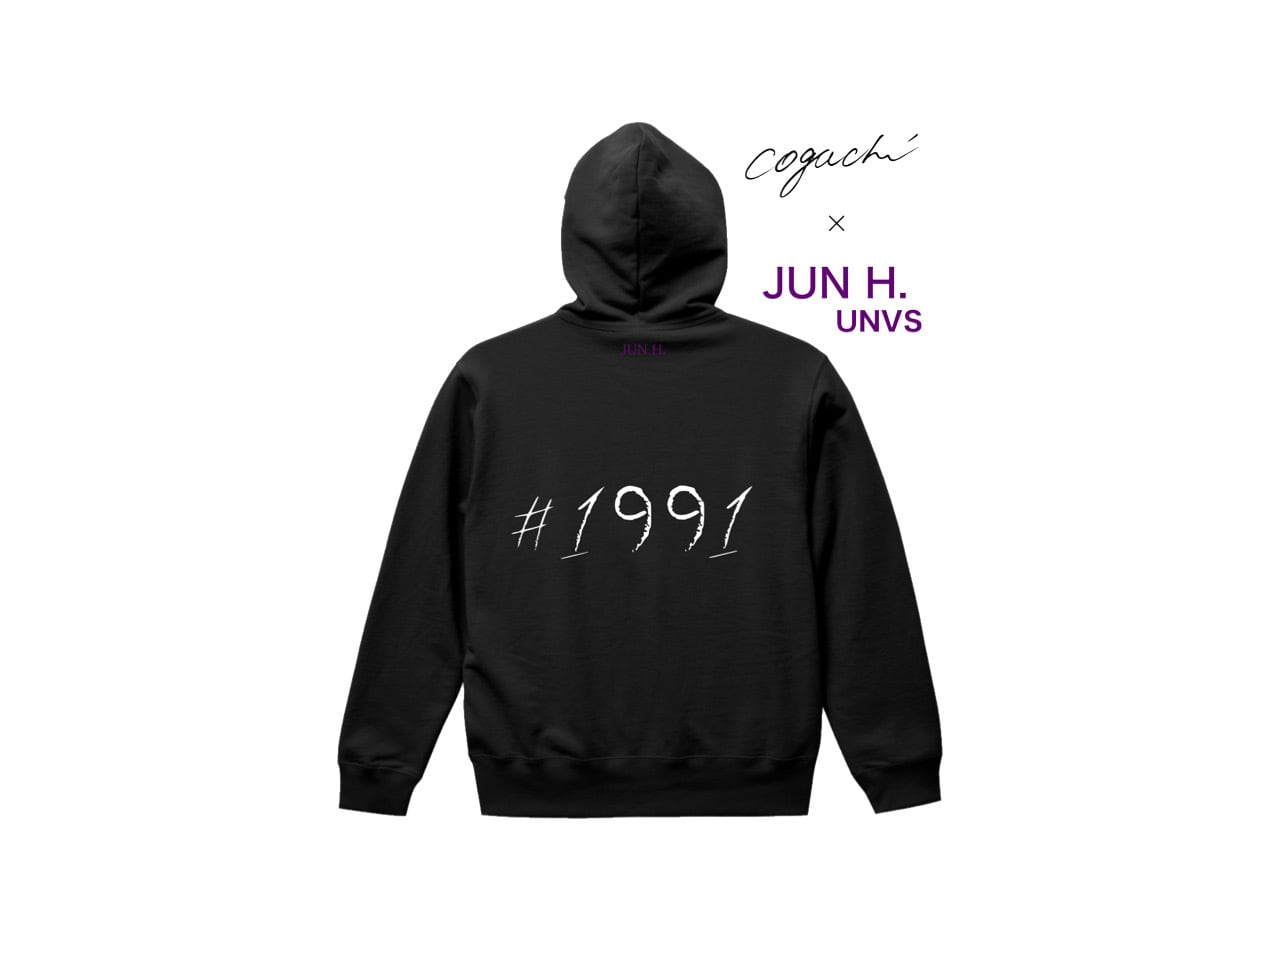 JUN H. (UNVS) Special Edition Collection 1991 zip hoodie (BLK/WH/PUR)